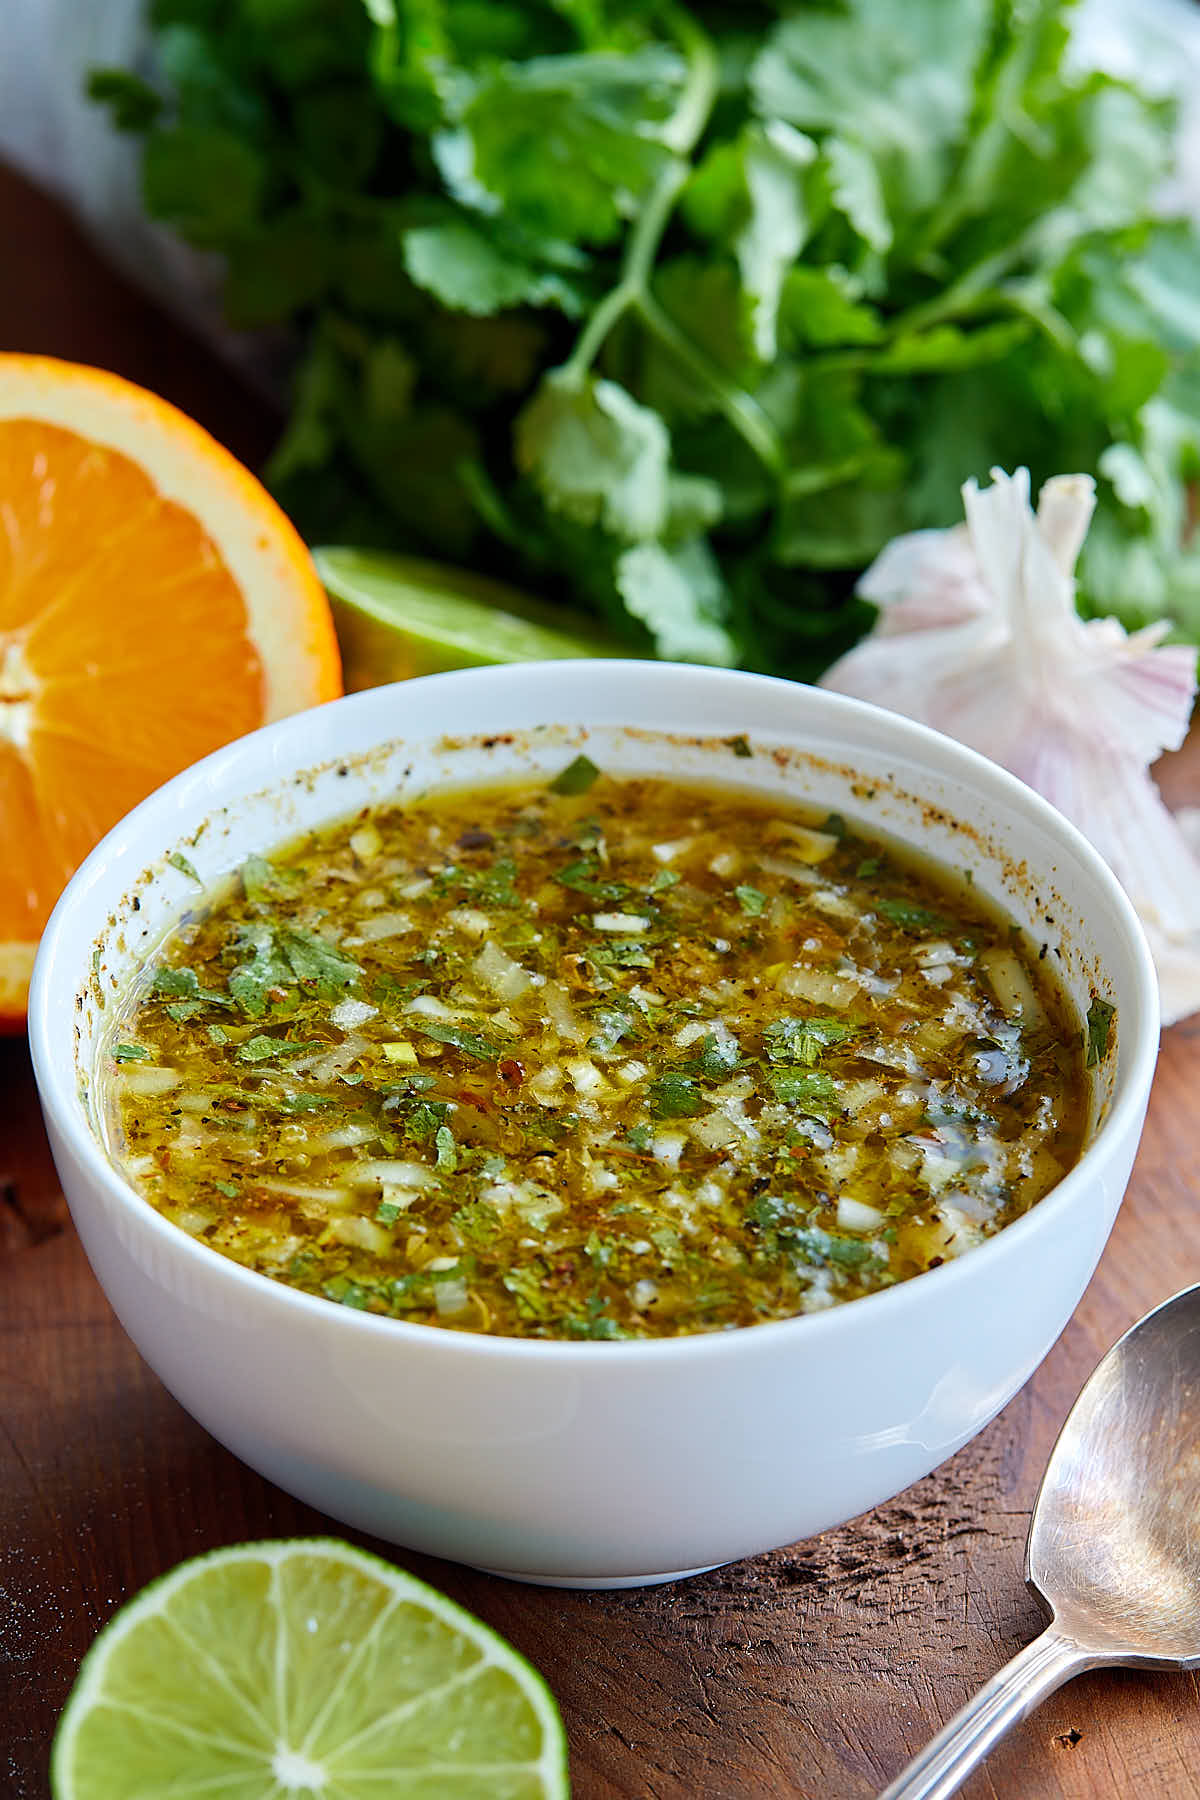 Cuban mojo marinade in a white bowl, surrounded by parsley, garlic, cut lime and orange.